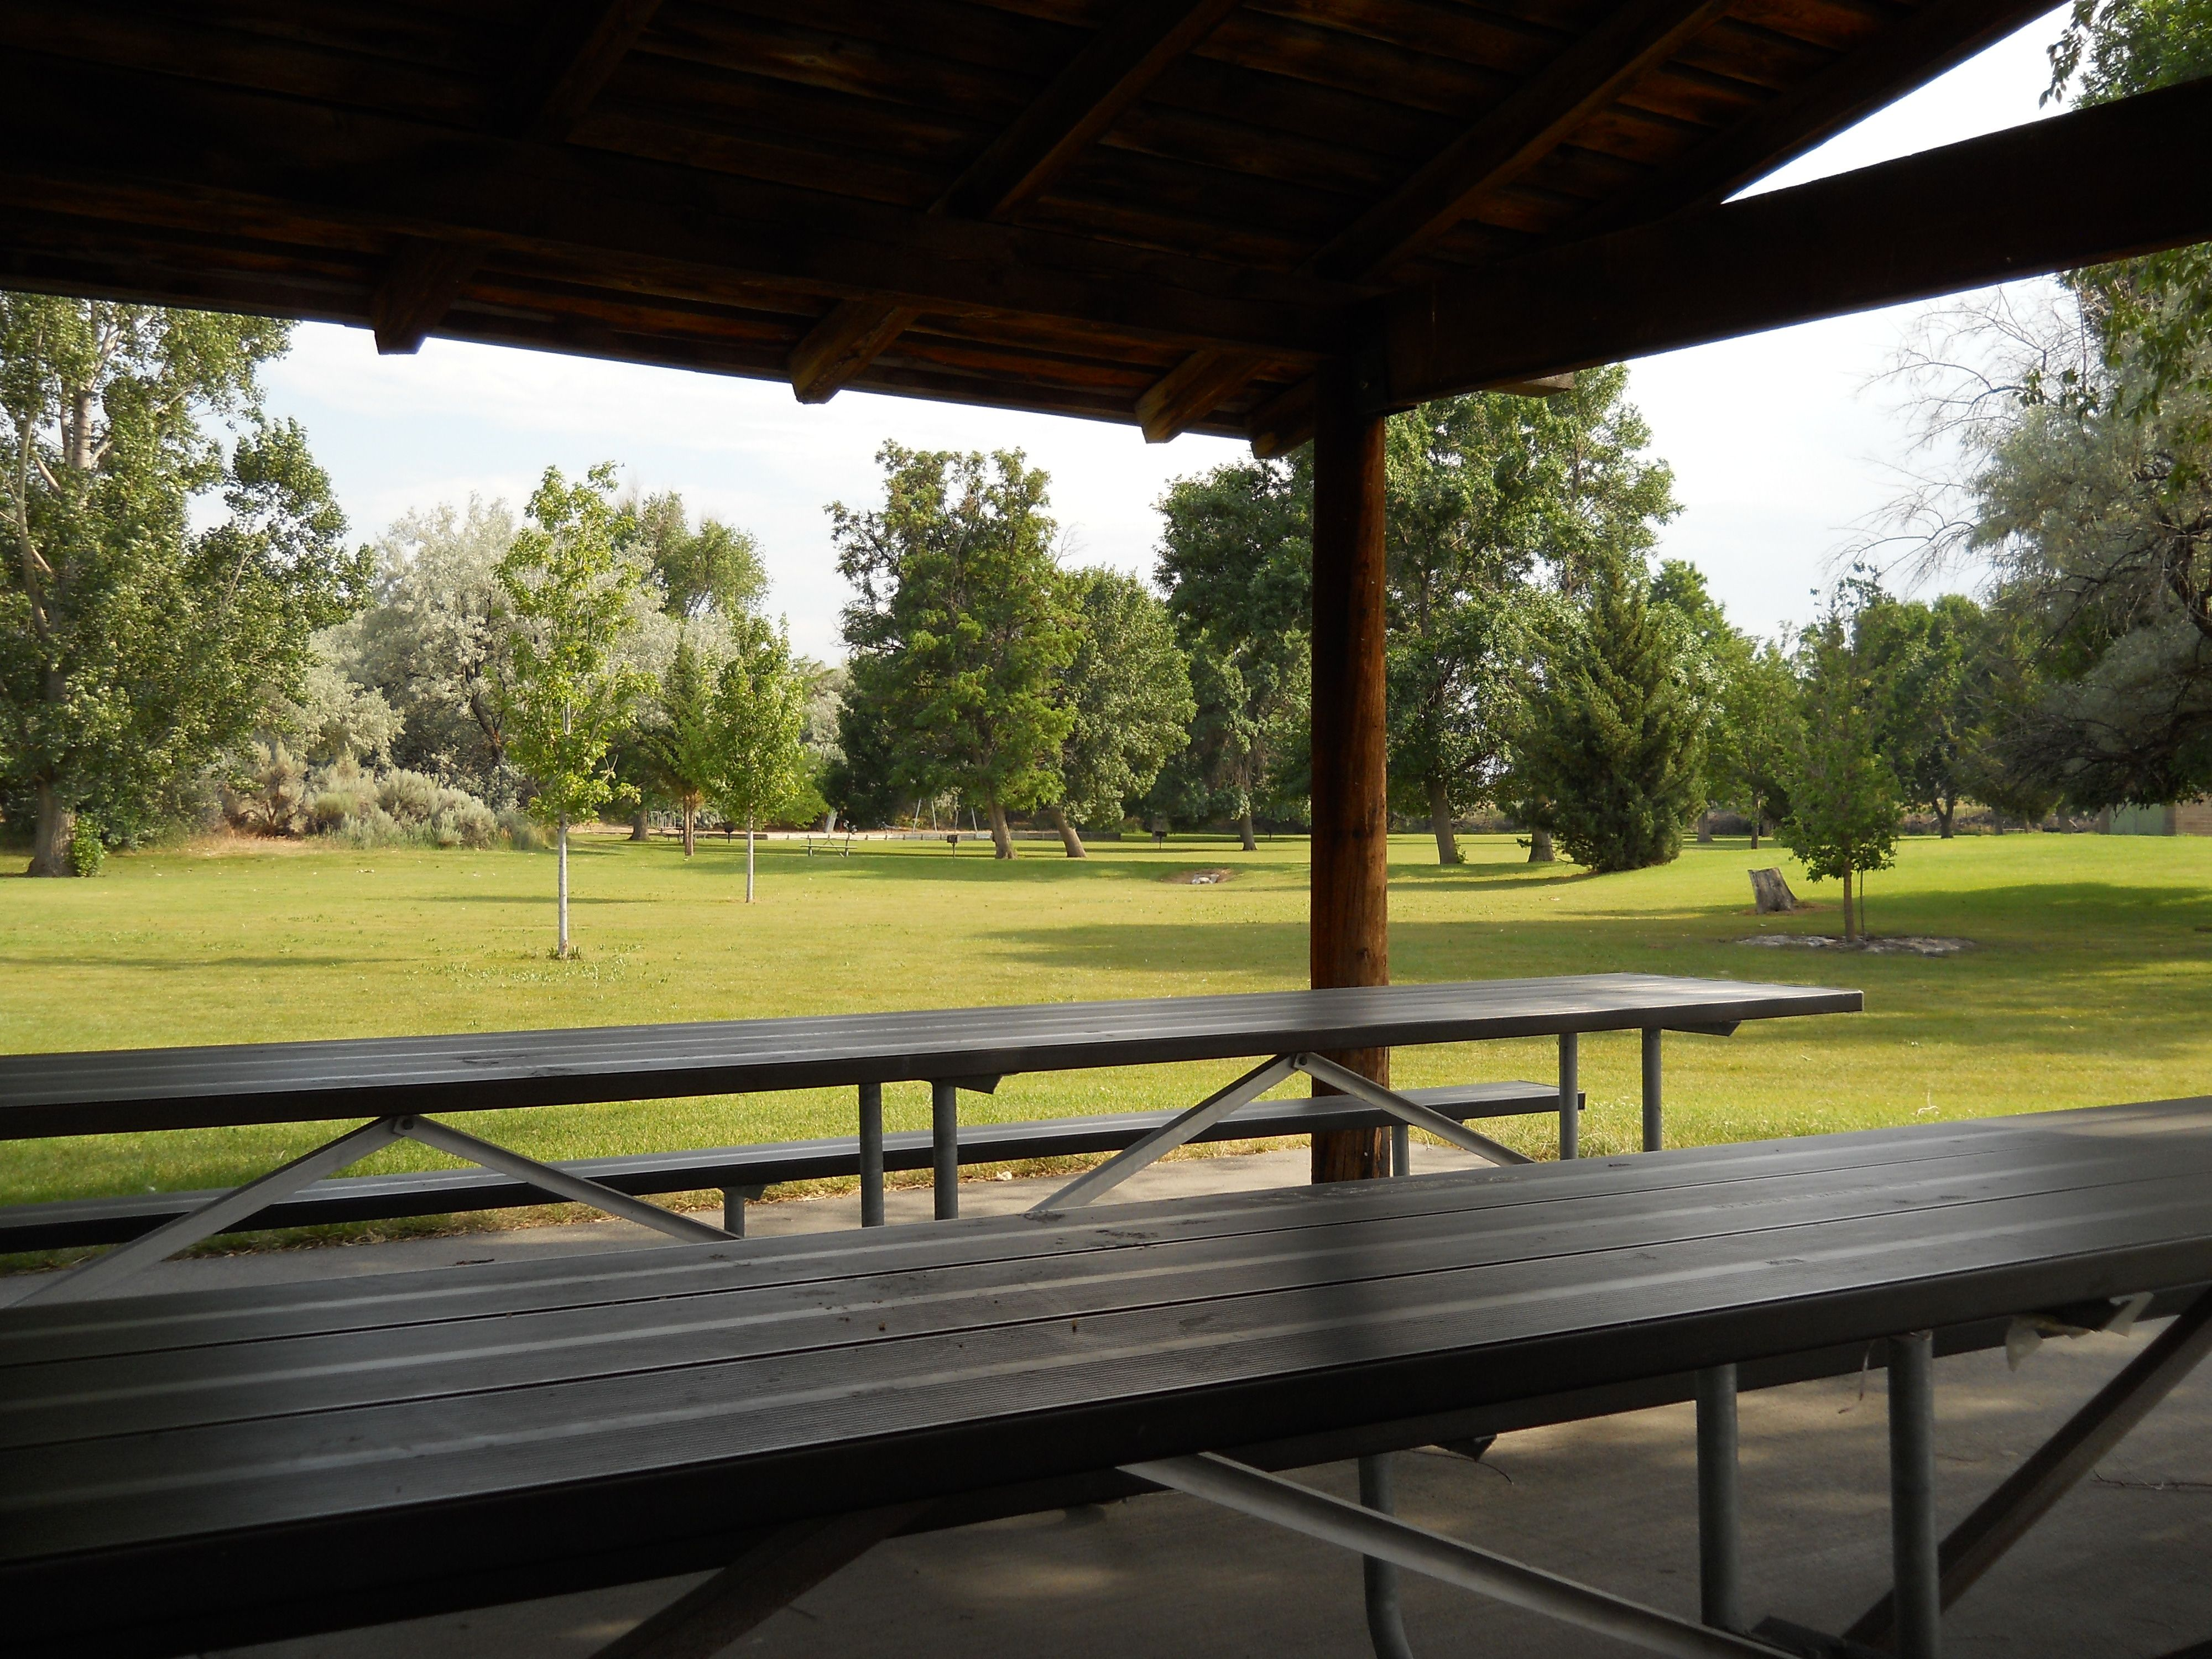 The stage Outdoor tables, state park, Outdoor decor